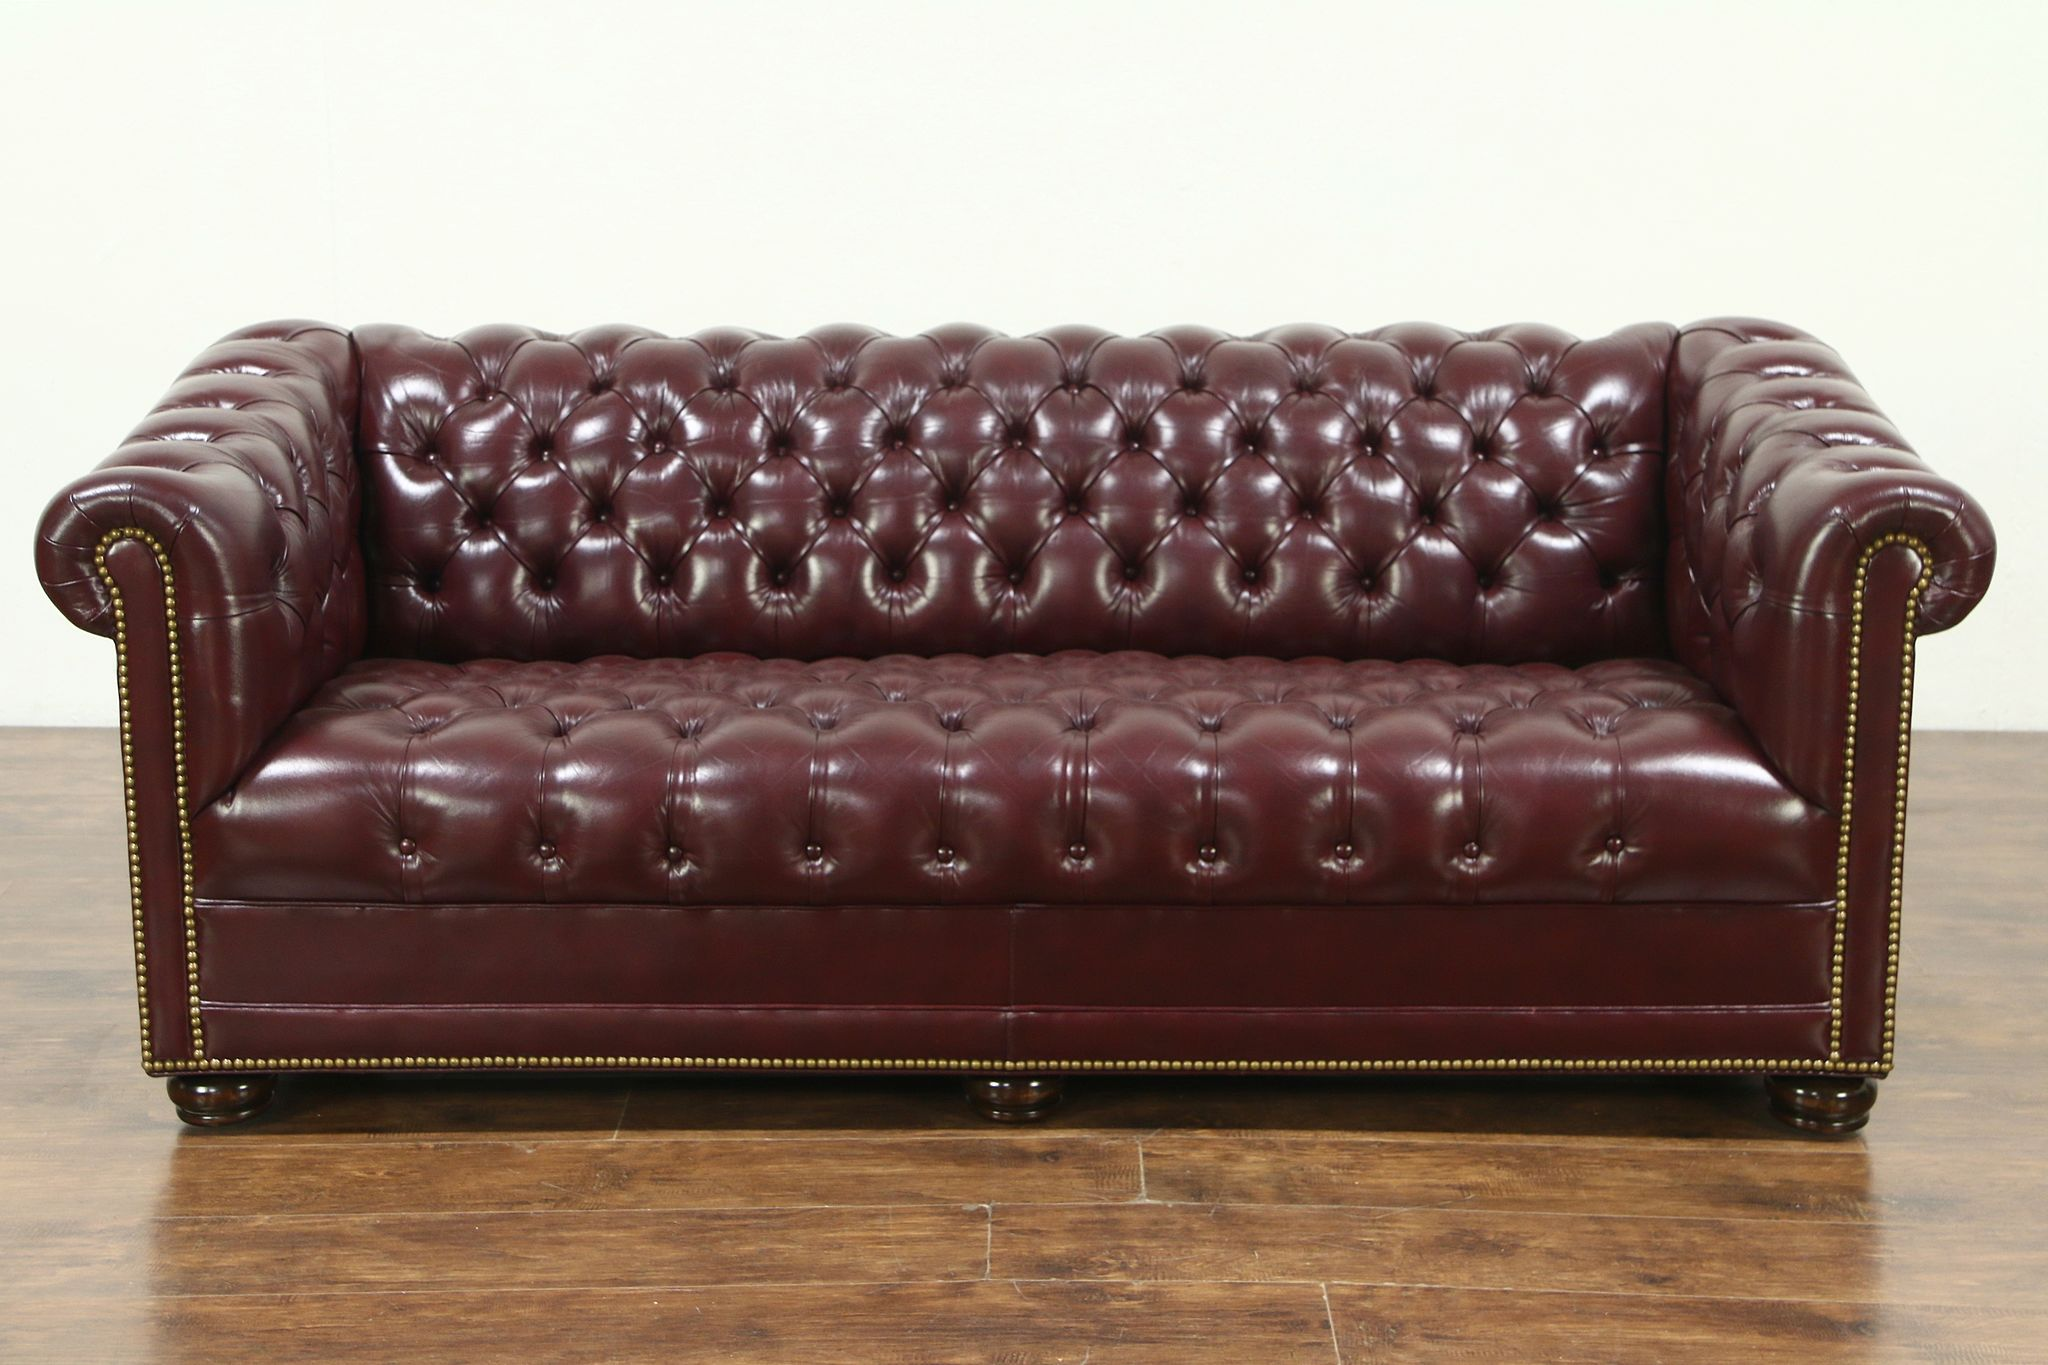 Vintage Couch Chesterfield Tufted Leather Vintage Sofa Signed Hancock Moore